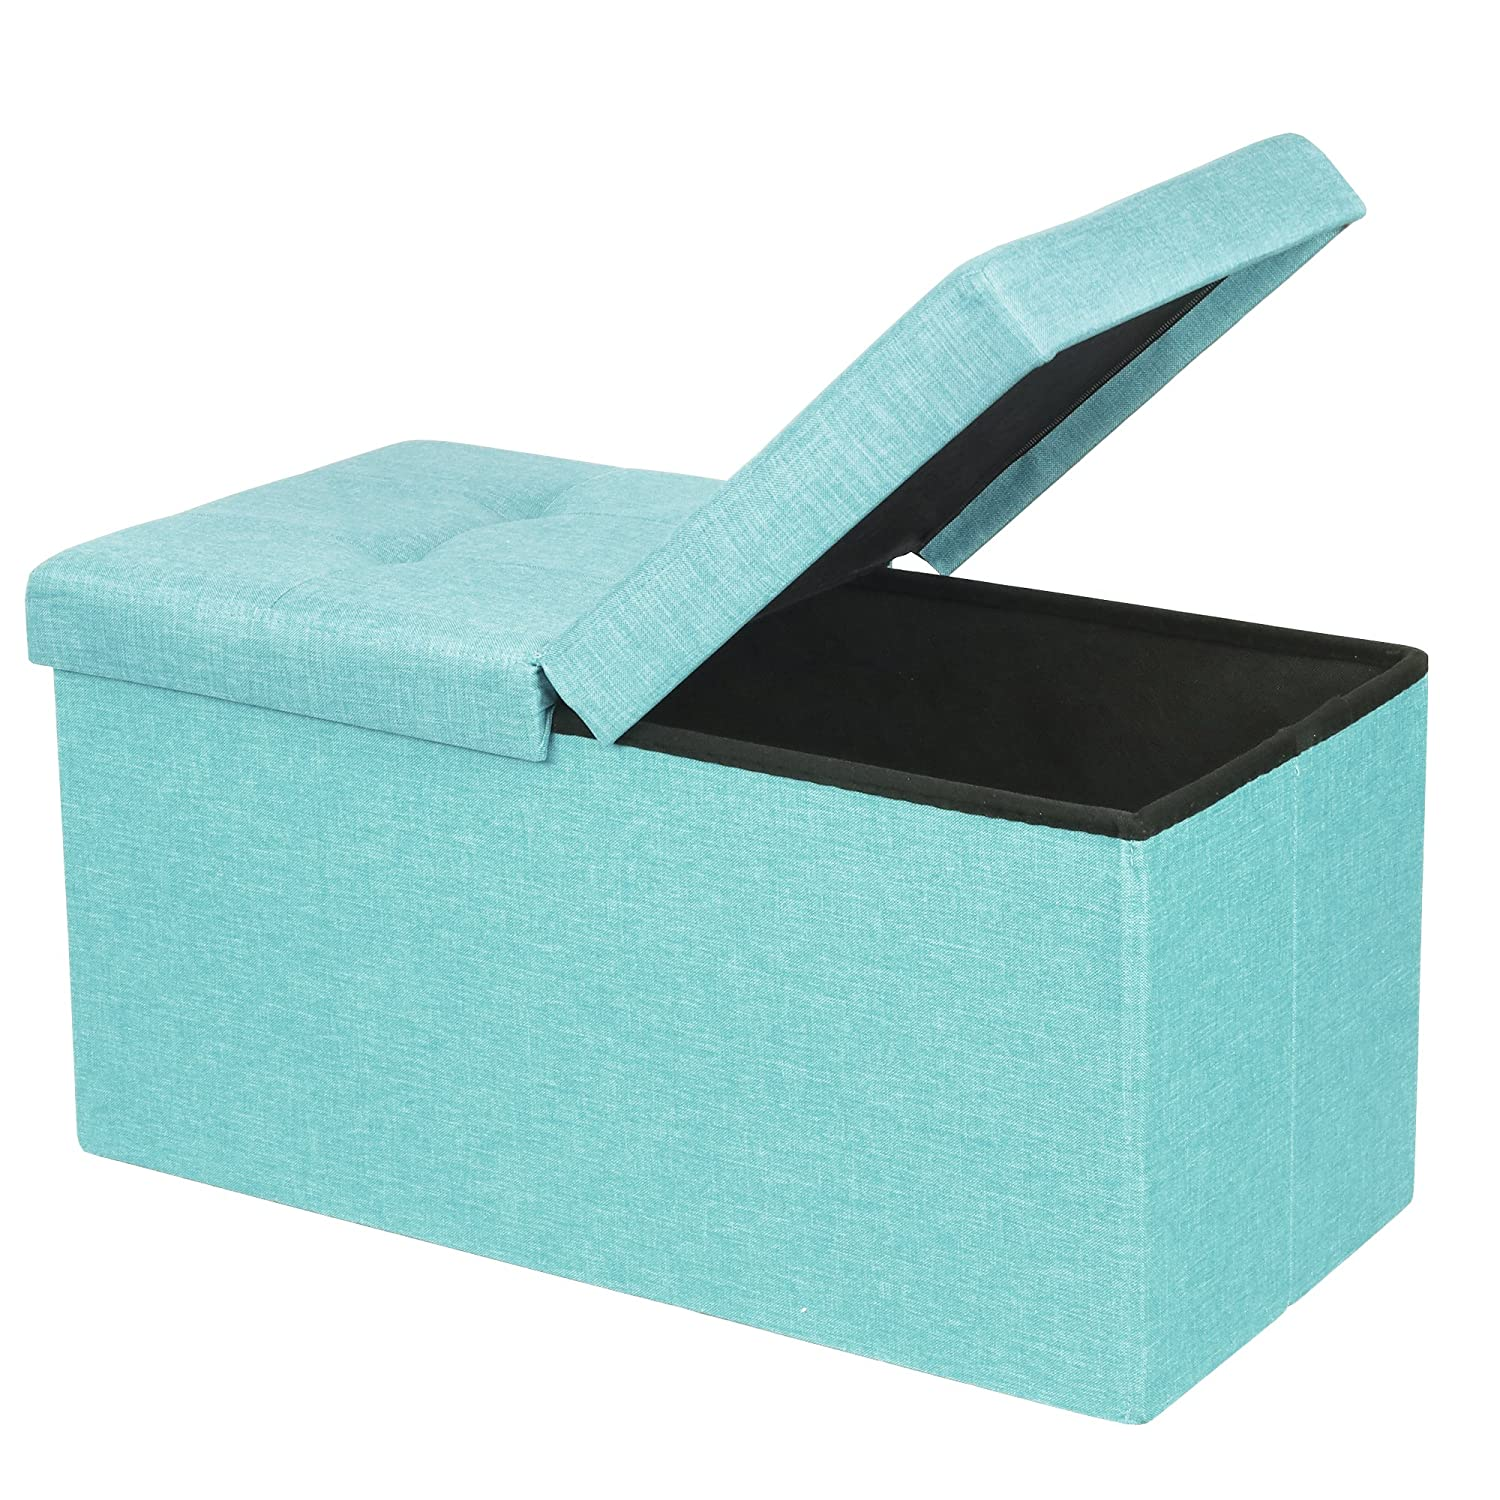 Otto & Ben BPP-OT-30F-MT Storage Ottoman with Smart Lift Top Upholstered Folding Foot Rest Stools Table Tufted Bench, 30, Mint Blue 30 Best Price Mattress 30 Storage Ottoman